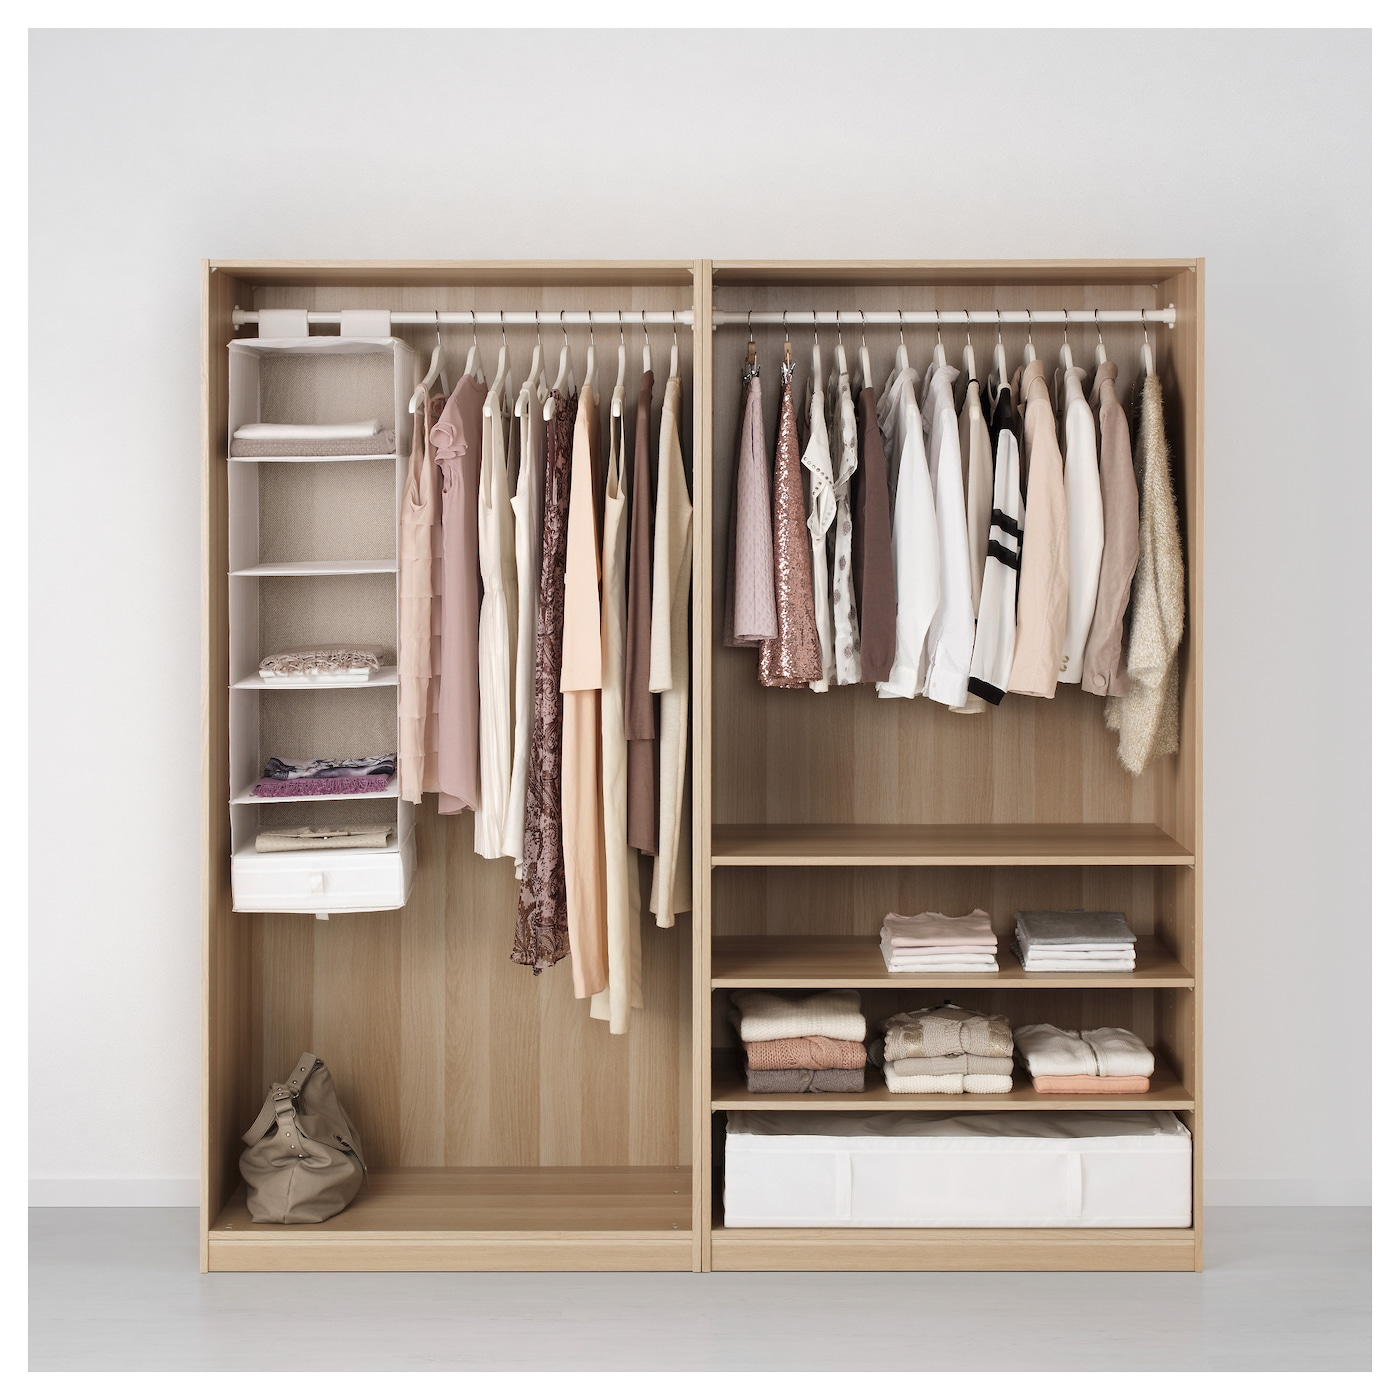 Kleiderschrank ikea pax  PAX Wardrobe White stained oak effect/ilseng white stained oak ...